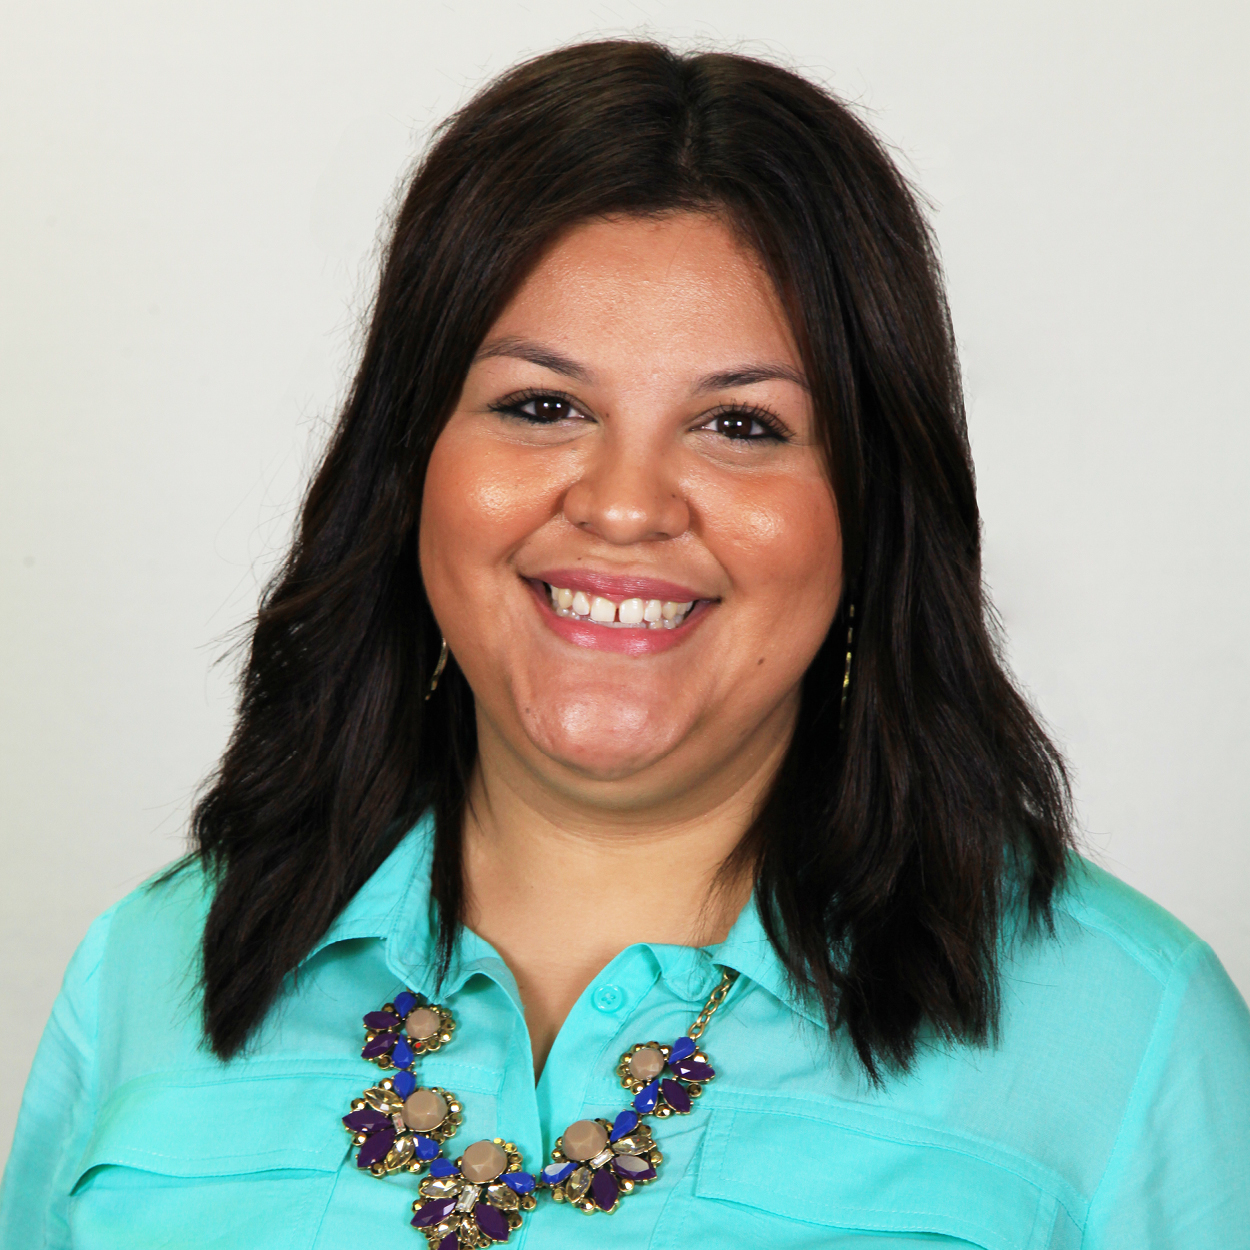 Lissette Espinoza, Grand Oak Academy Teacher